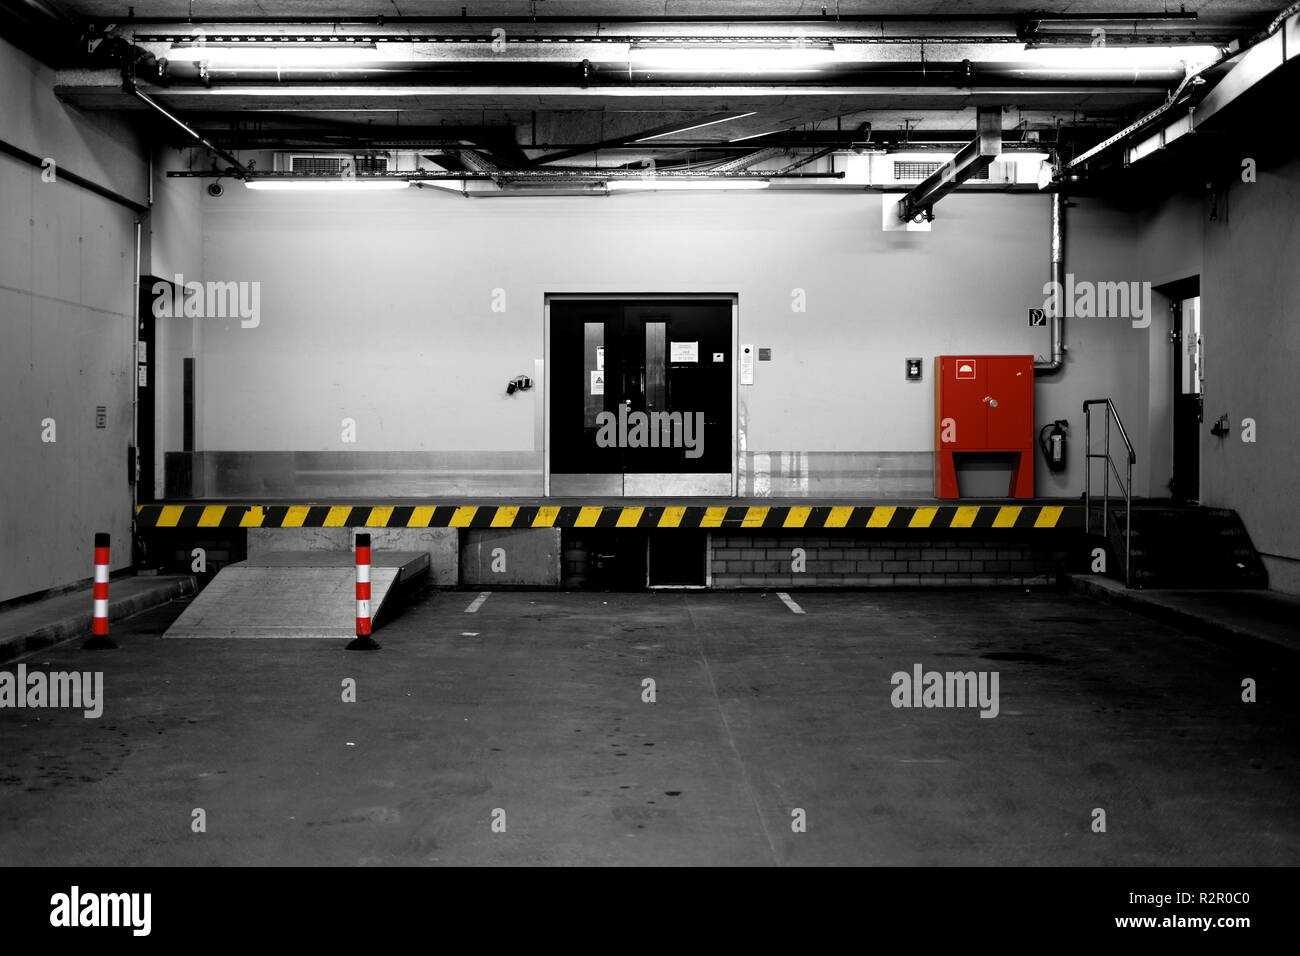 Loading ramp of a commercial building with fire safety equipment - Stock Image